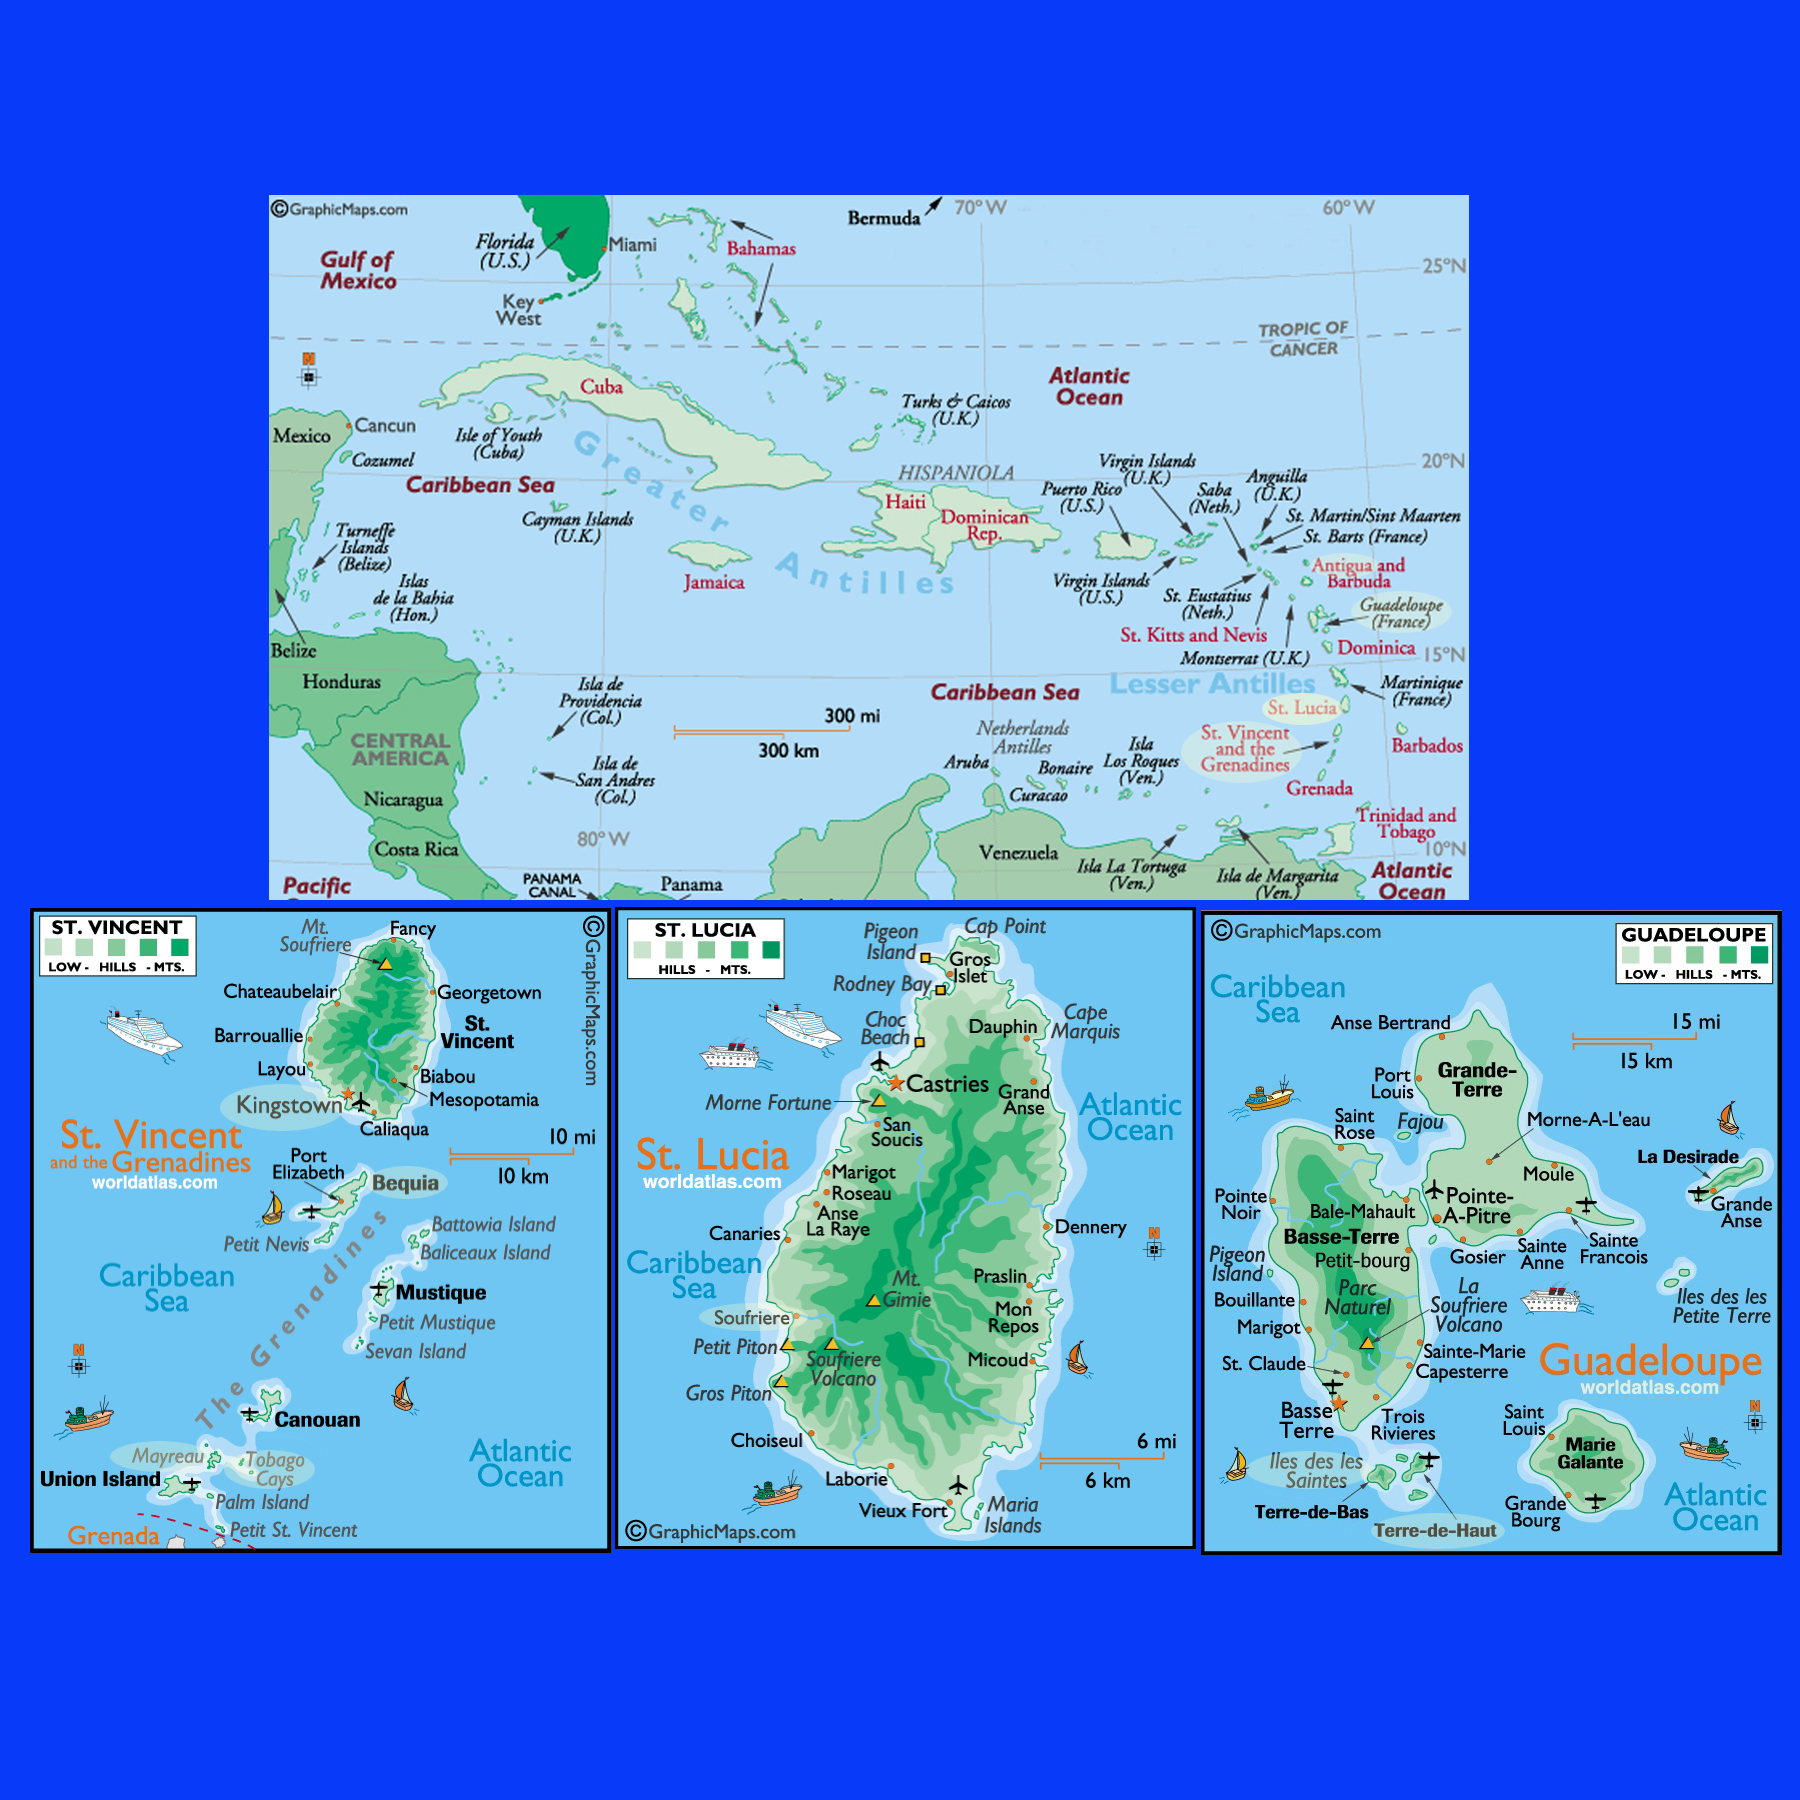 Caribbean Islands Map Caribbean St Vincent St Lucia Guadeloupe - Caribbean islands map